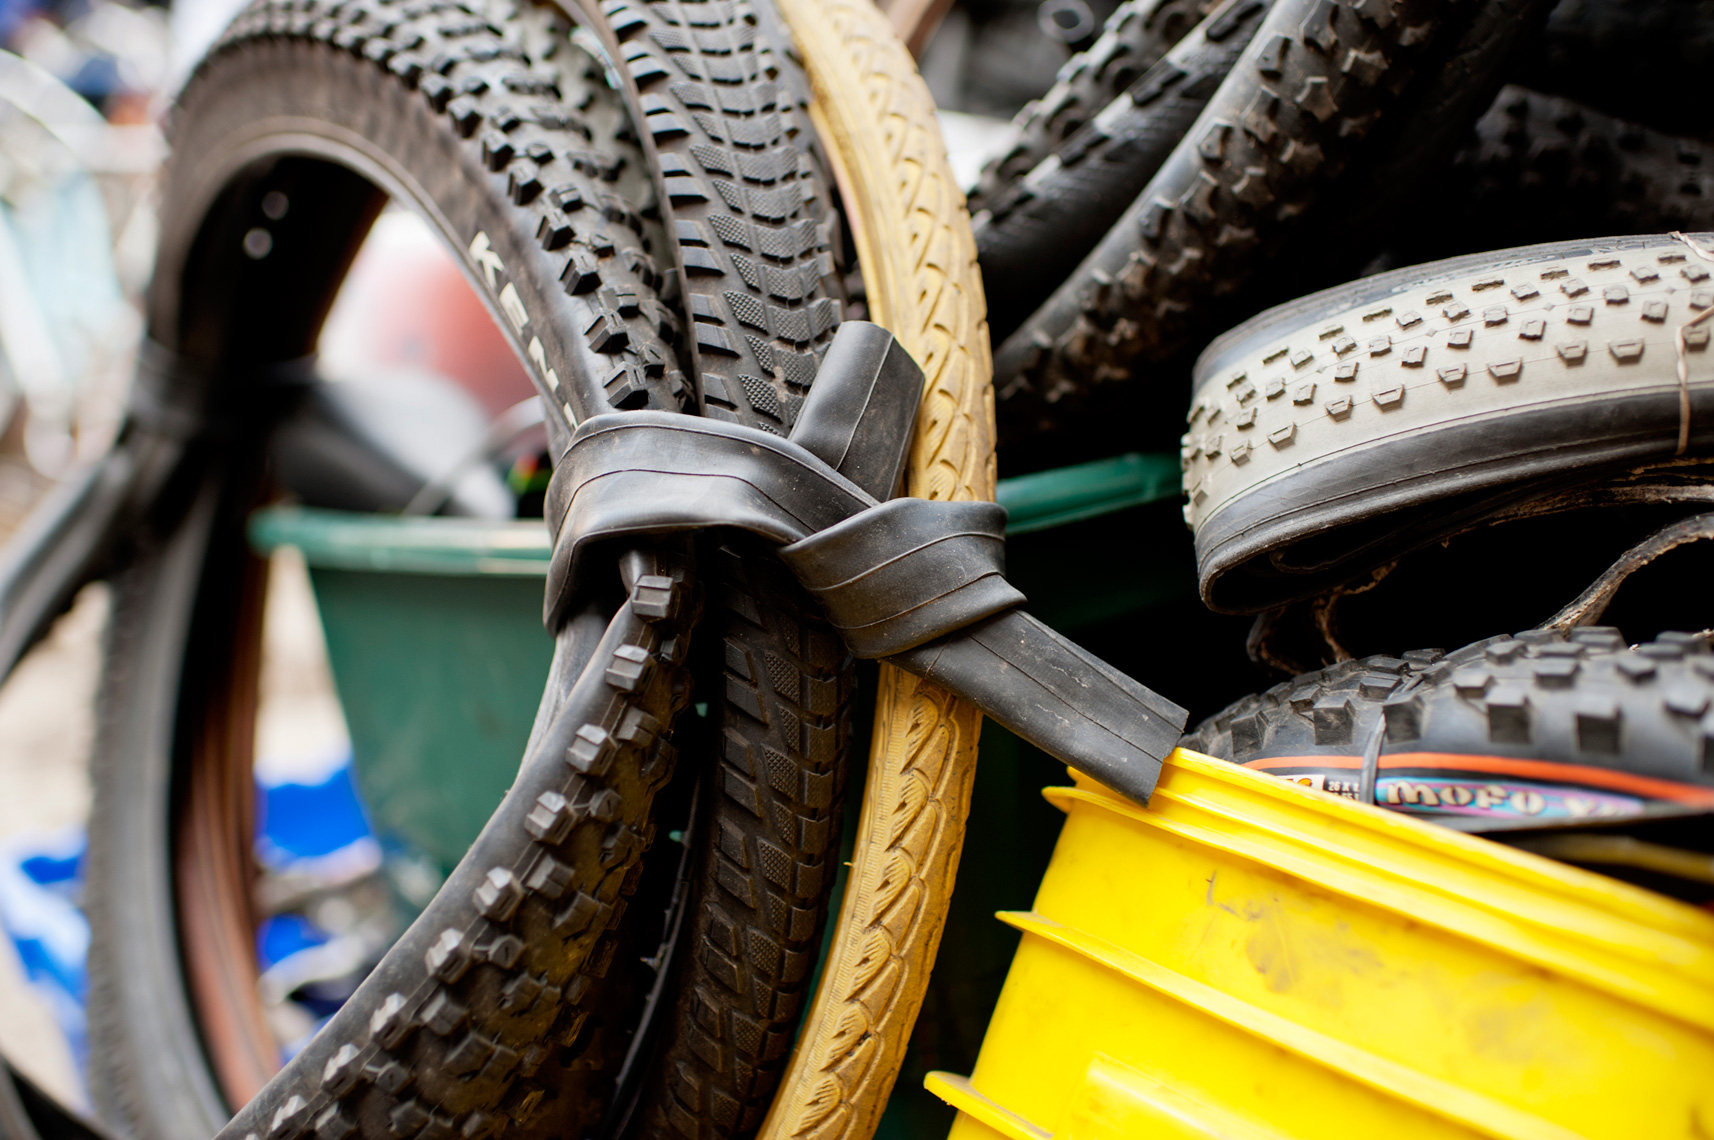 used tires packed up to be shipped to Central America through Bikes Not Bombs for community transformation